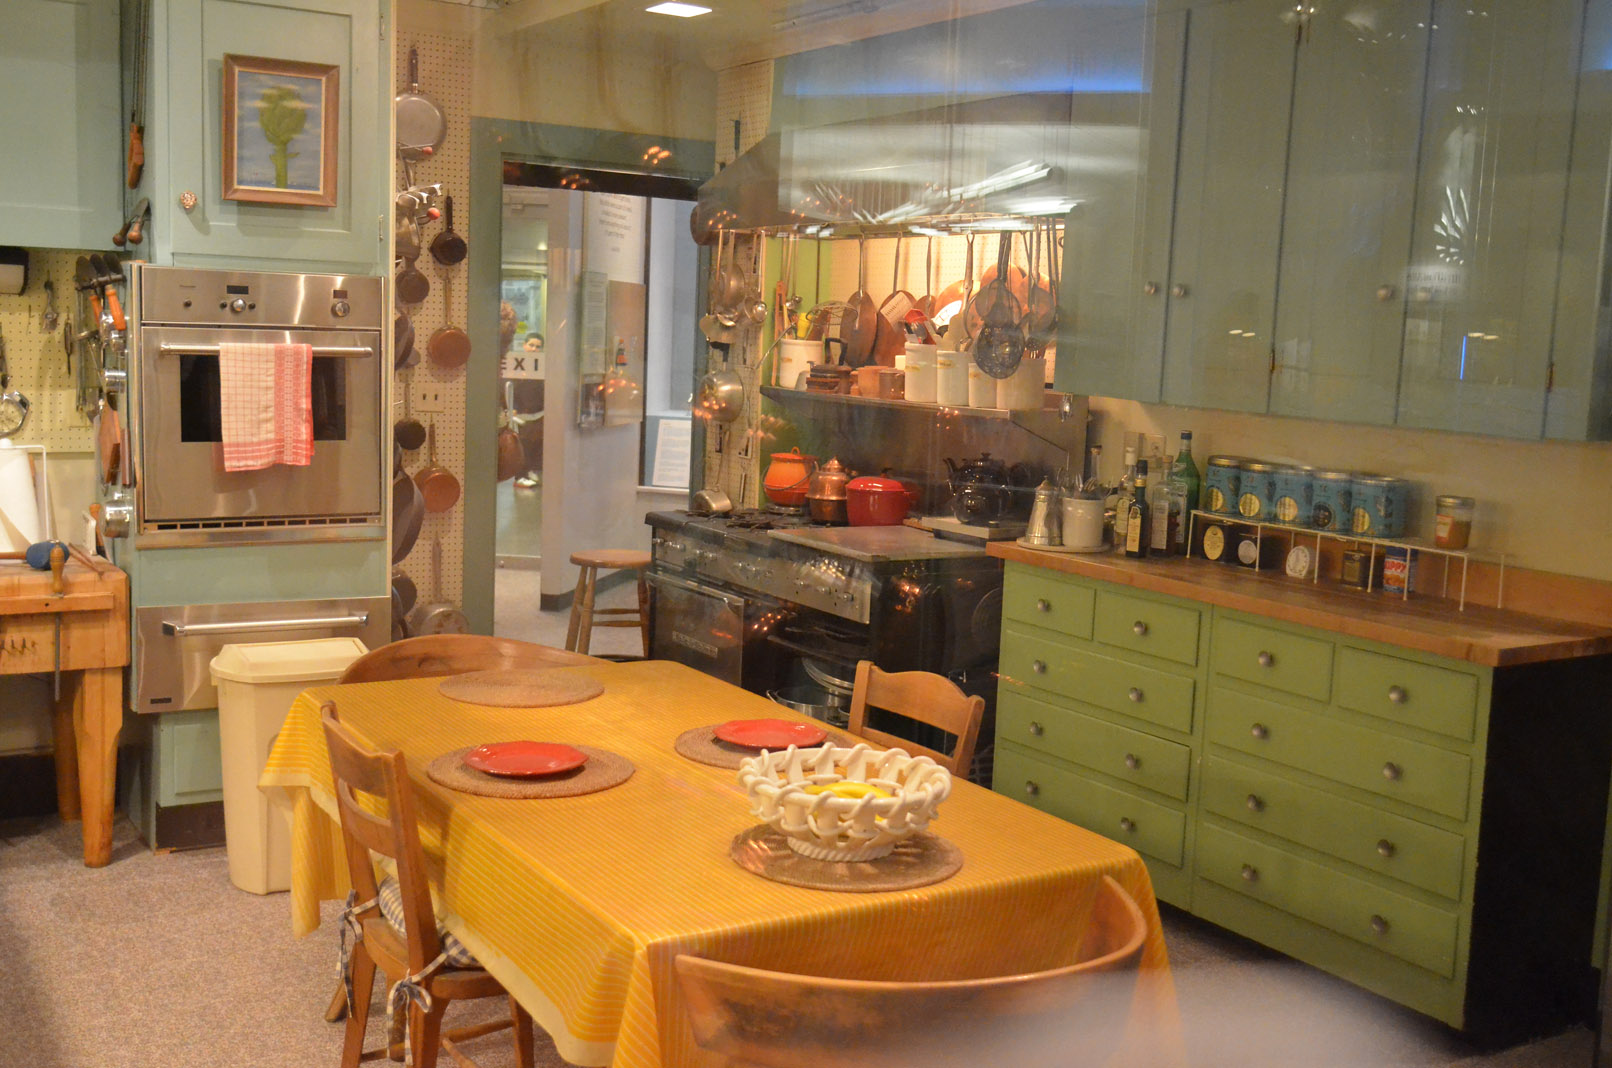 Bon app tit julia child s kitchen at the smithsonian Kitchen setting pictures